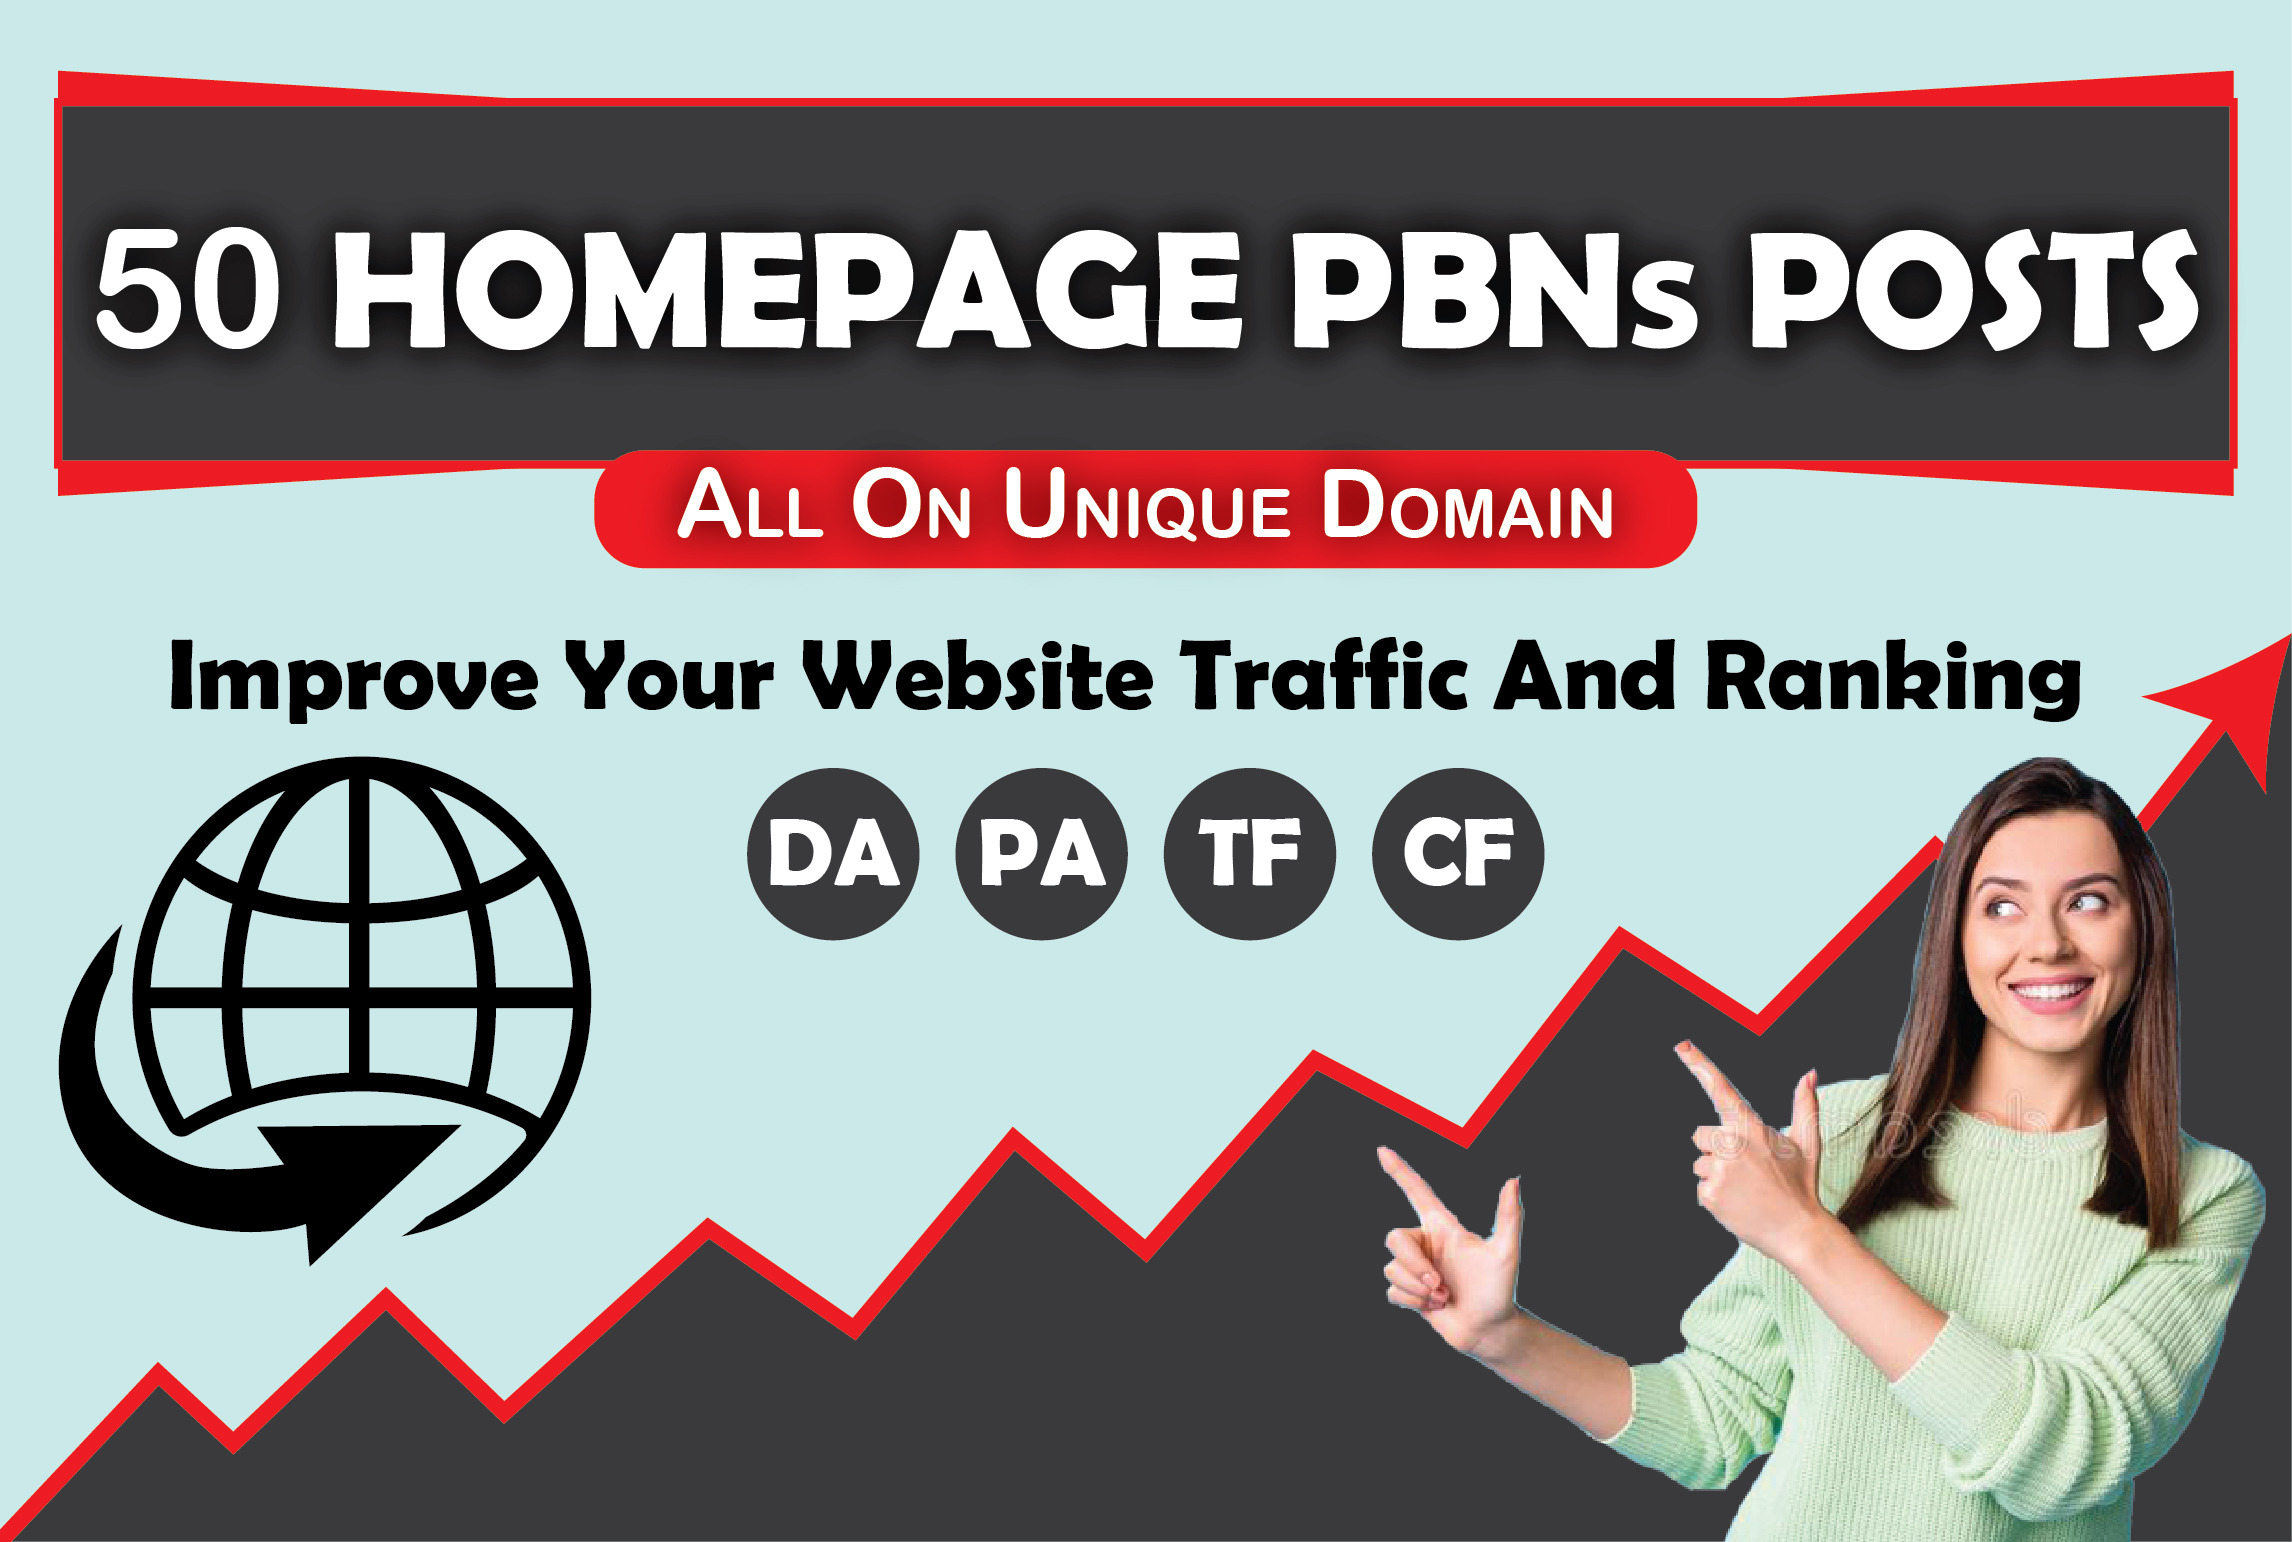 BUILD - 50 - HomePage PBNs Backlinks With High DA/PA/CF/TF Moz lowest Spam Rate